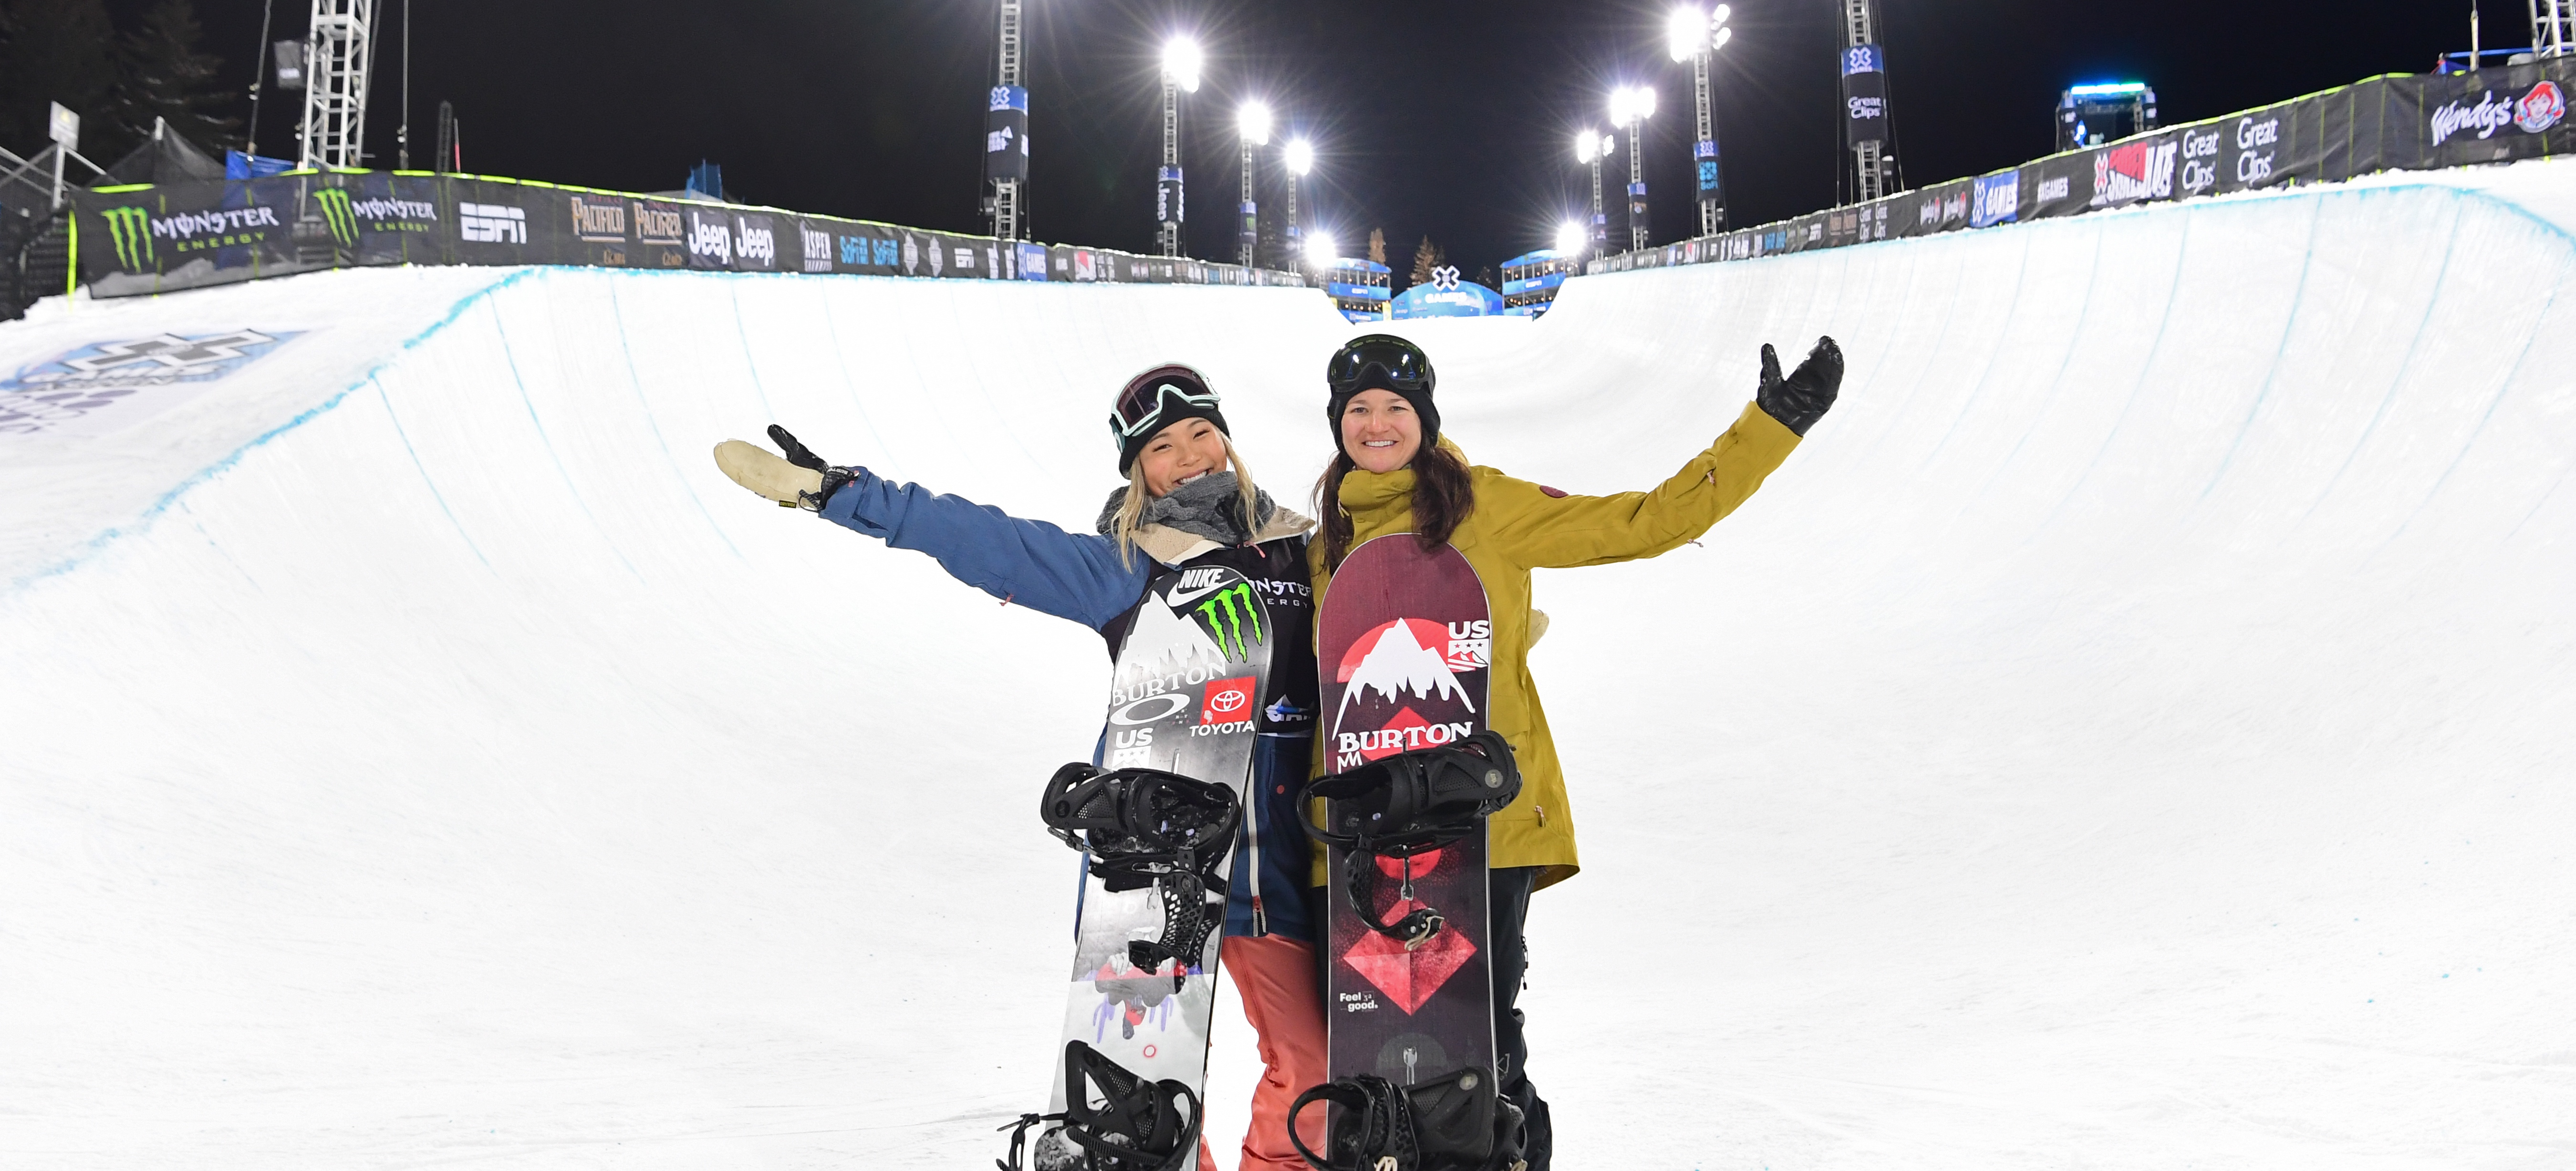 Chloe Kim and Kelly Clark